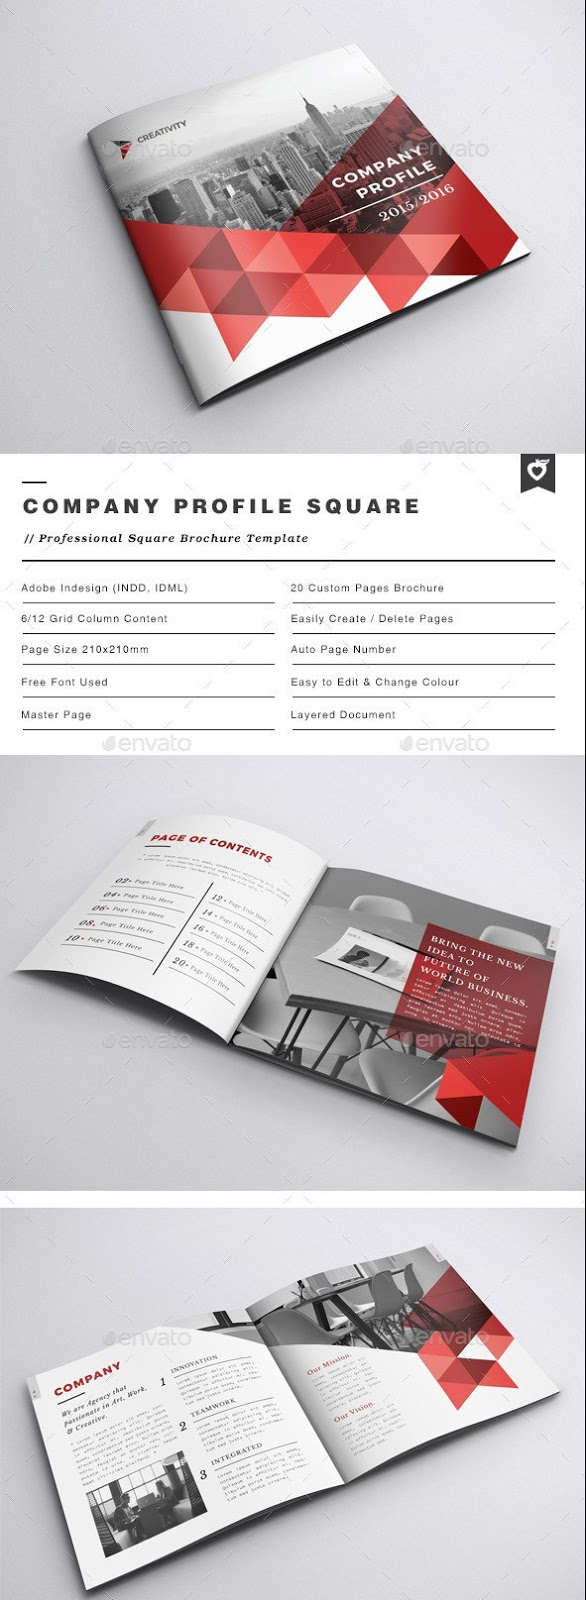 100 free premium brochure templates photoshop psd for How to design a brochure in photoshop